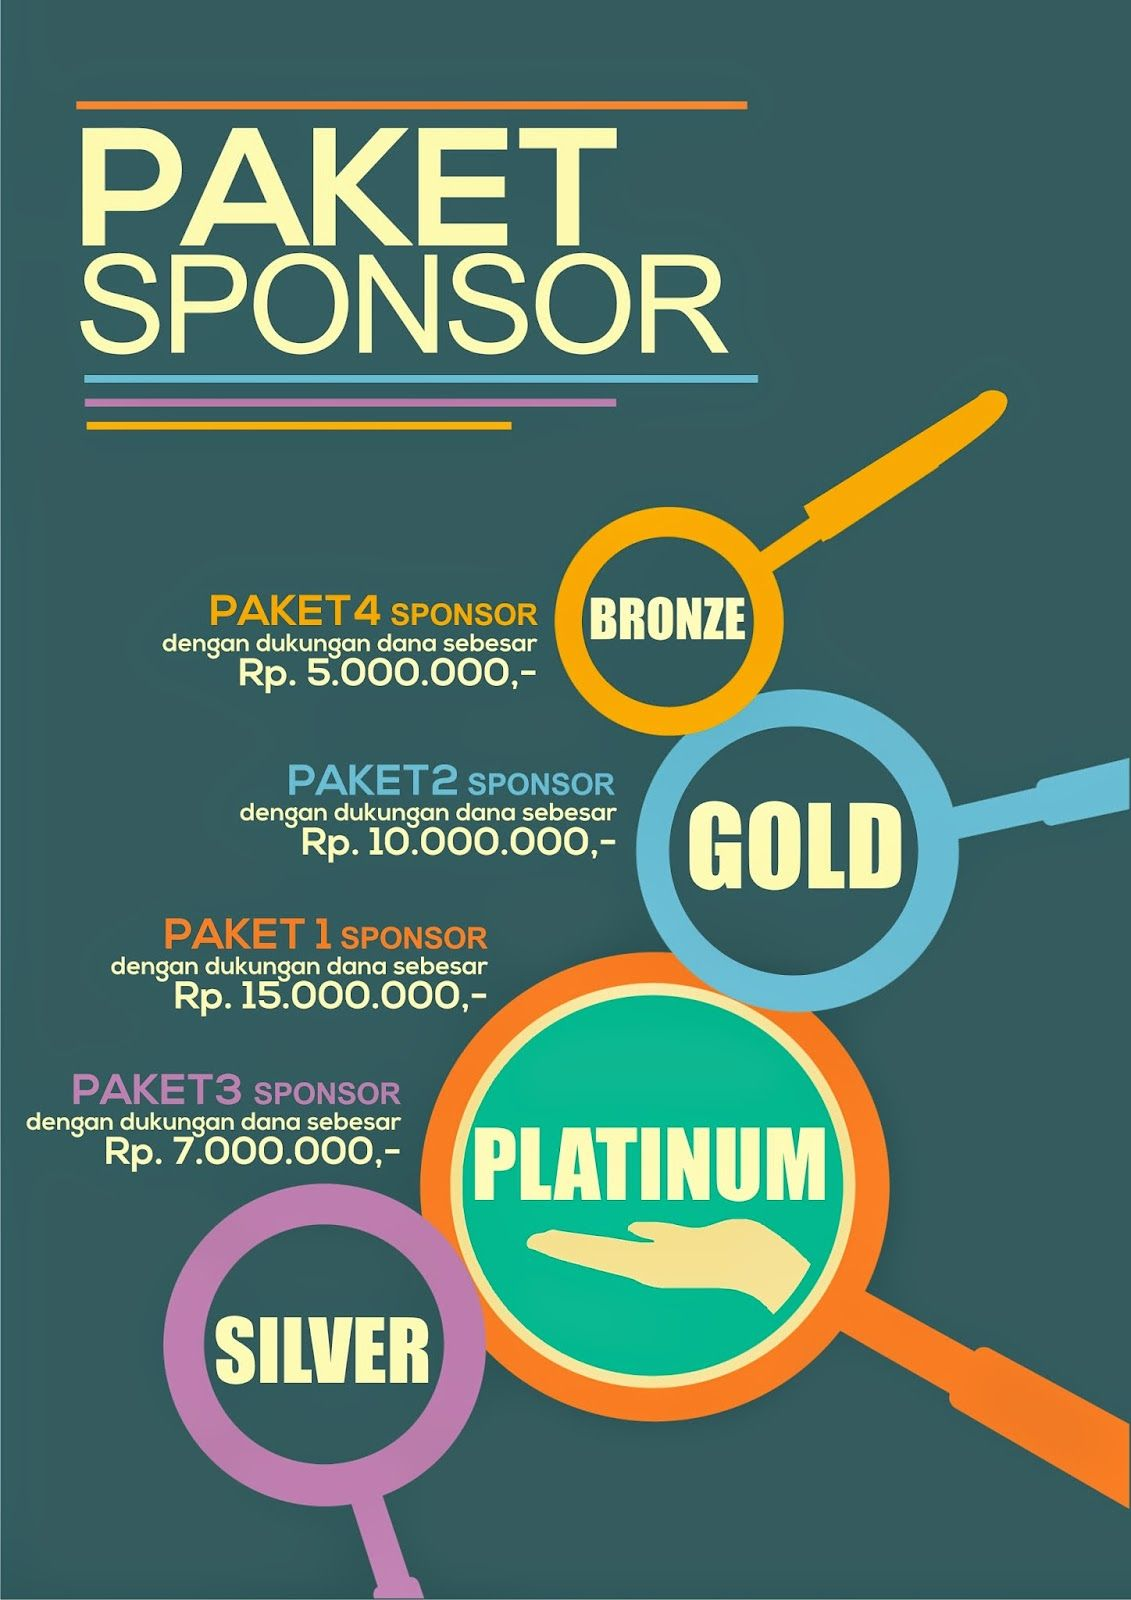 Sponsorship Proposal Design Google Search Design Pinterest